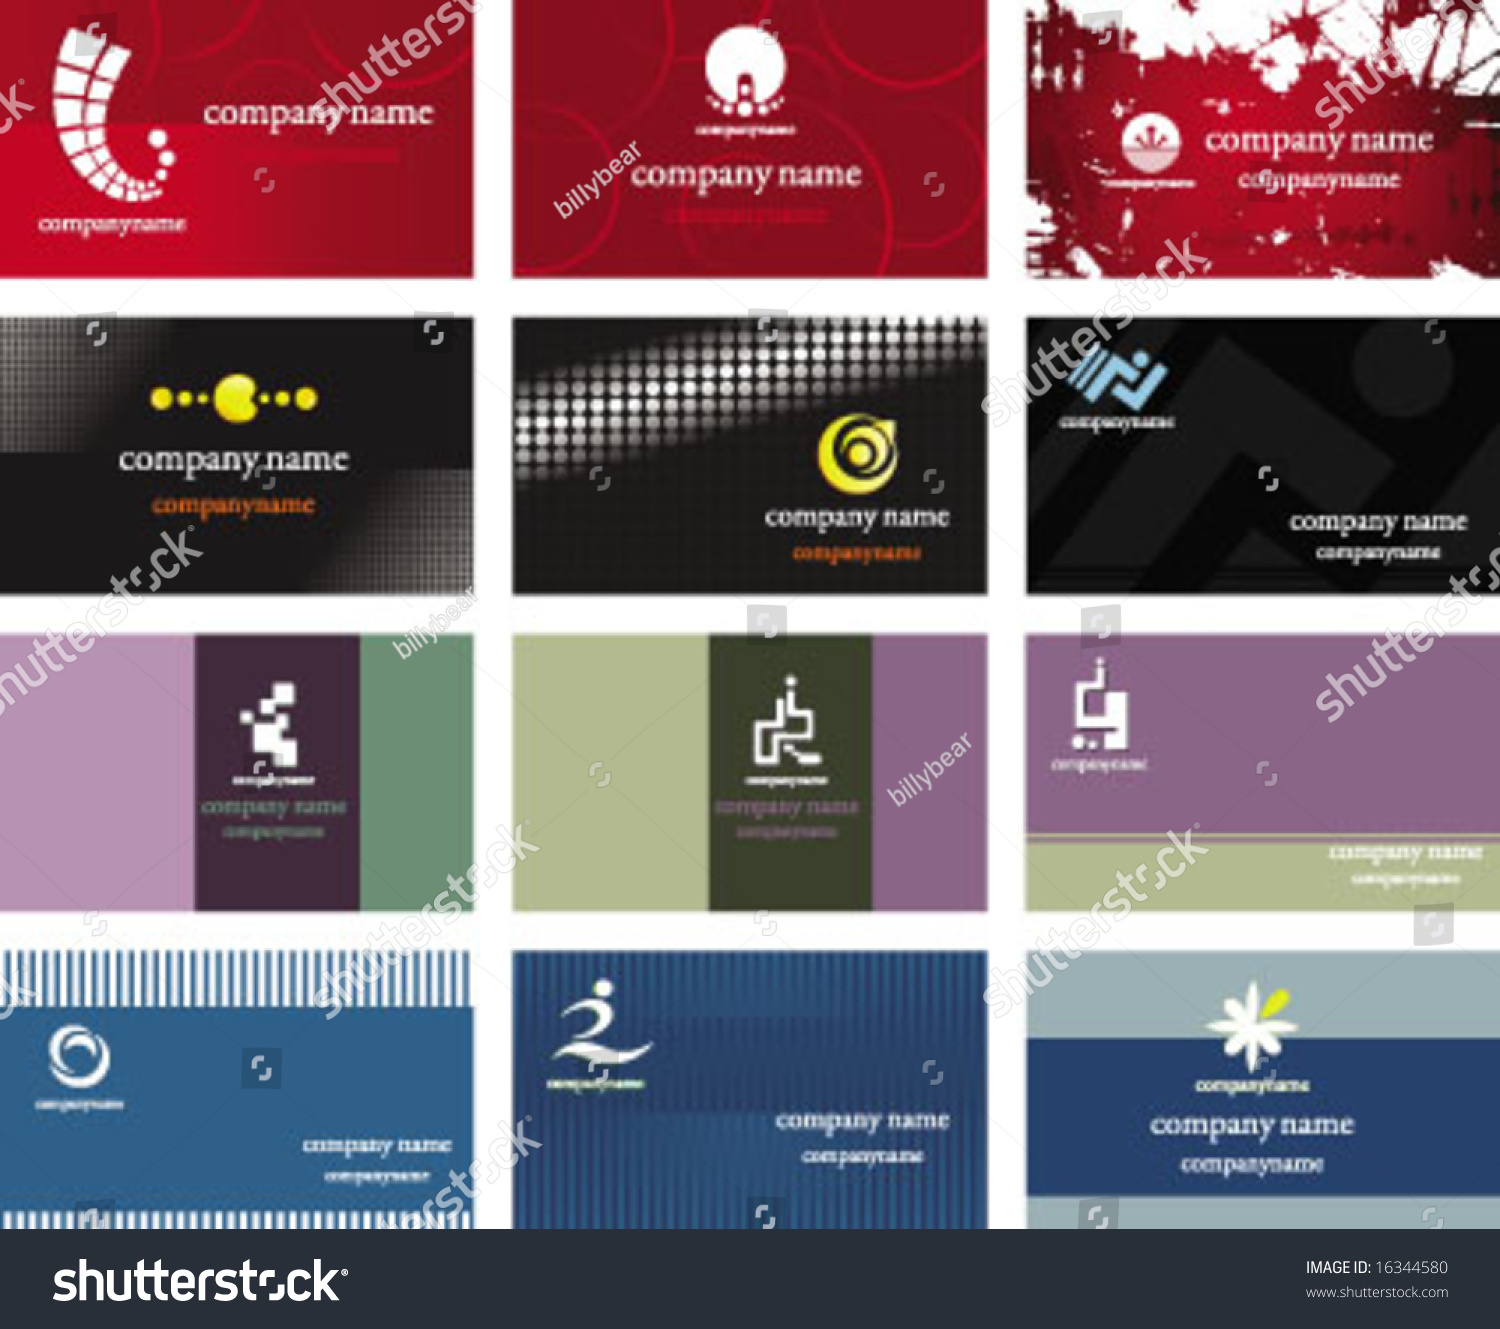 Business card and logo design choice image free business cards business card logo design stock vector 16344580 shutterstock business card and logo design magicingreecefo choice image magicingreecefo Image collections